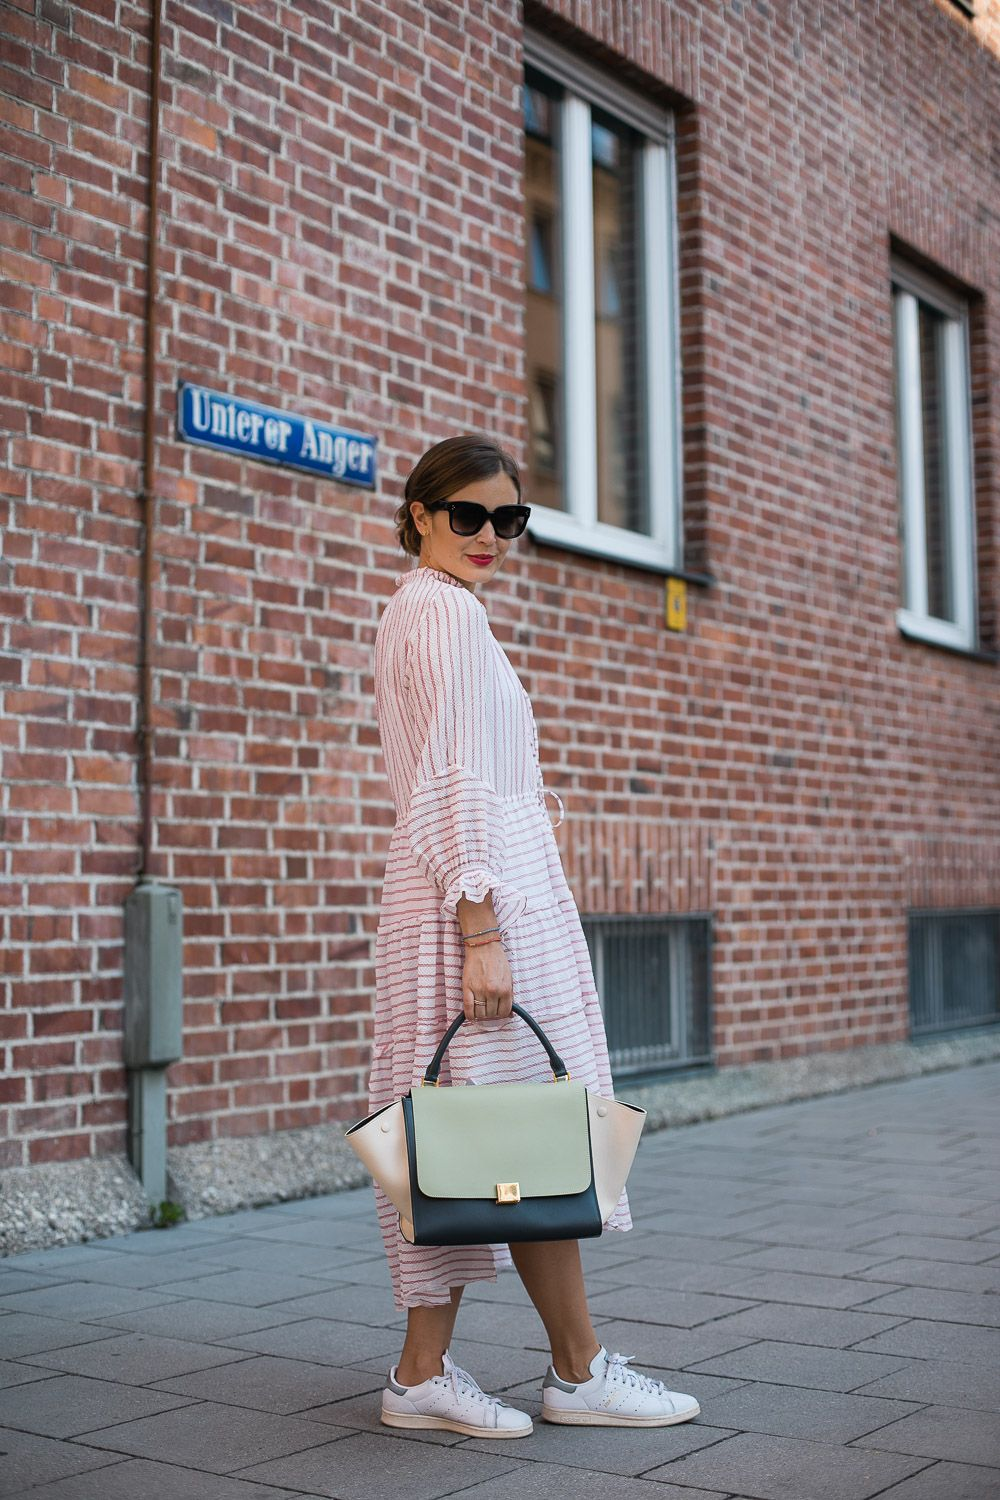 Sommerlook Mit Belize Kleid Und Celine Trapeze Bag Sommerlook